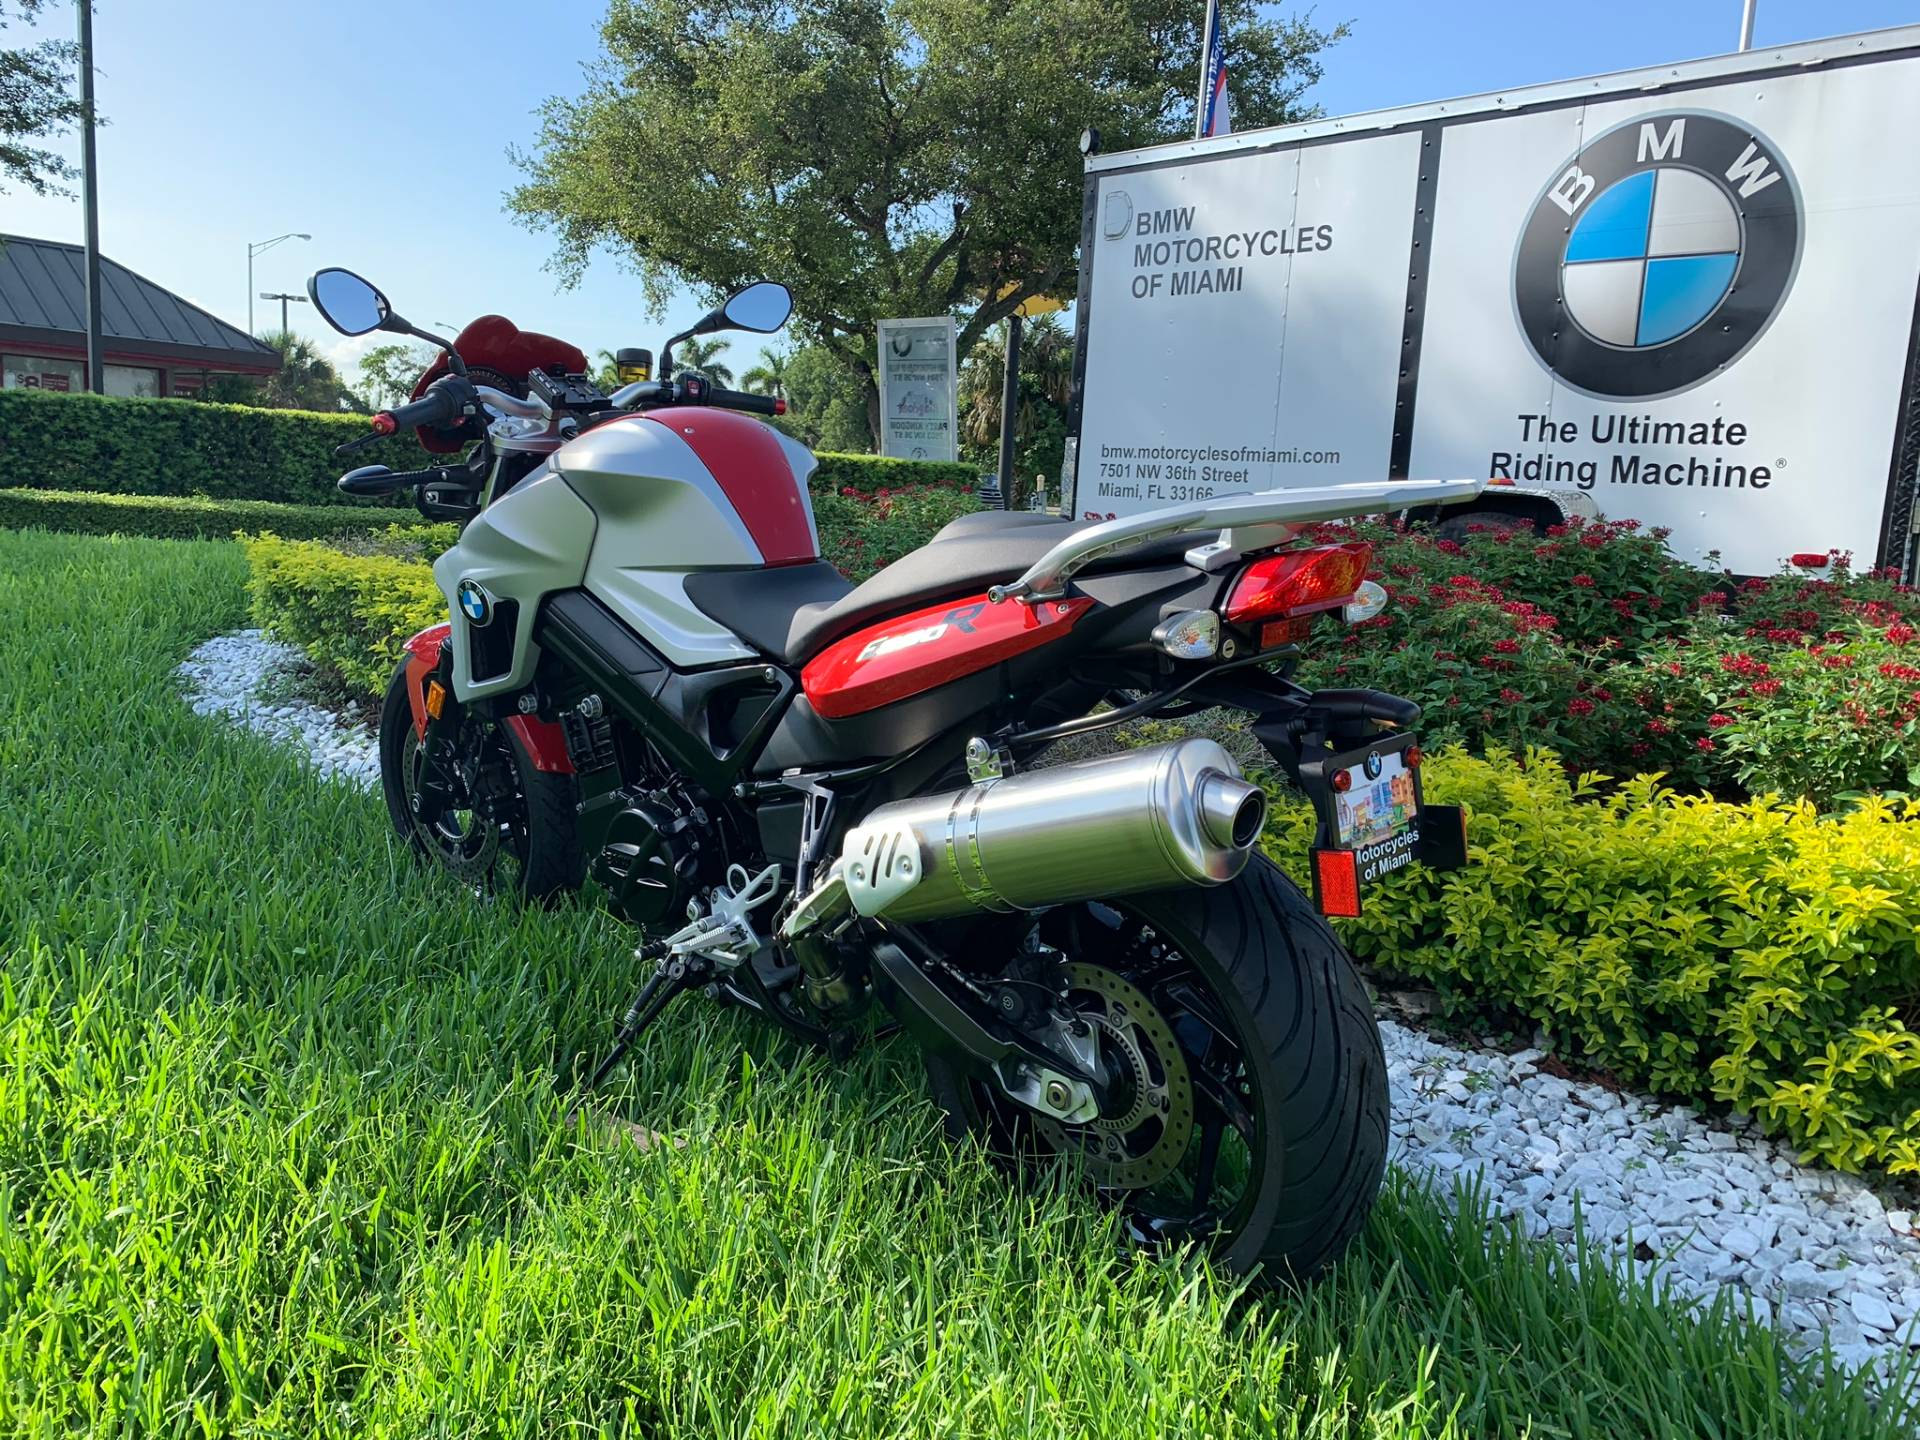 Used 2012 BMW F 800 R for sale, BMW F 800R for sale, BMW Motorcycle F800R, used BMW Roaster, Naked, 800, BMW. BMW Motorcycles of Miami, Motorcycles of Miami, Motorcycles Miami, New Motorcycles, Used Motorcycles, pre-owned. #BMWMotorcyclesOfMiami #MotorcyclesOfMiami. - Photo 10